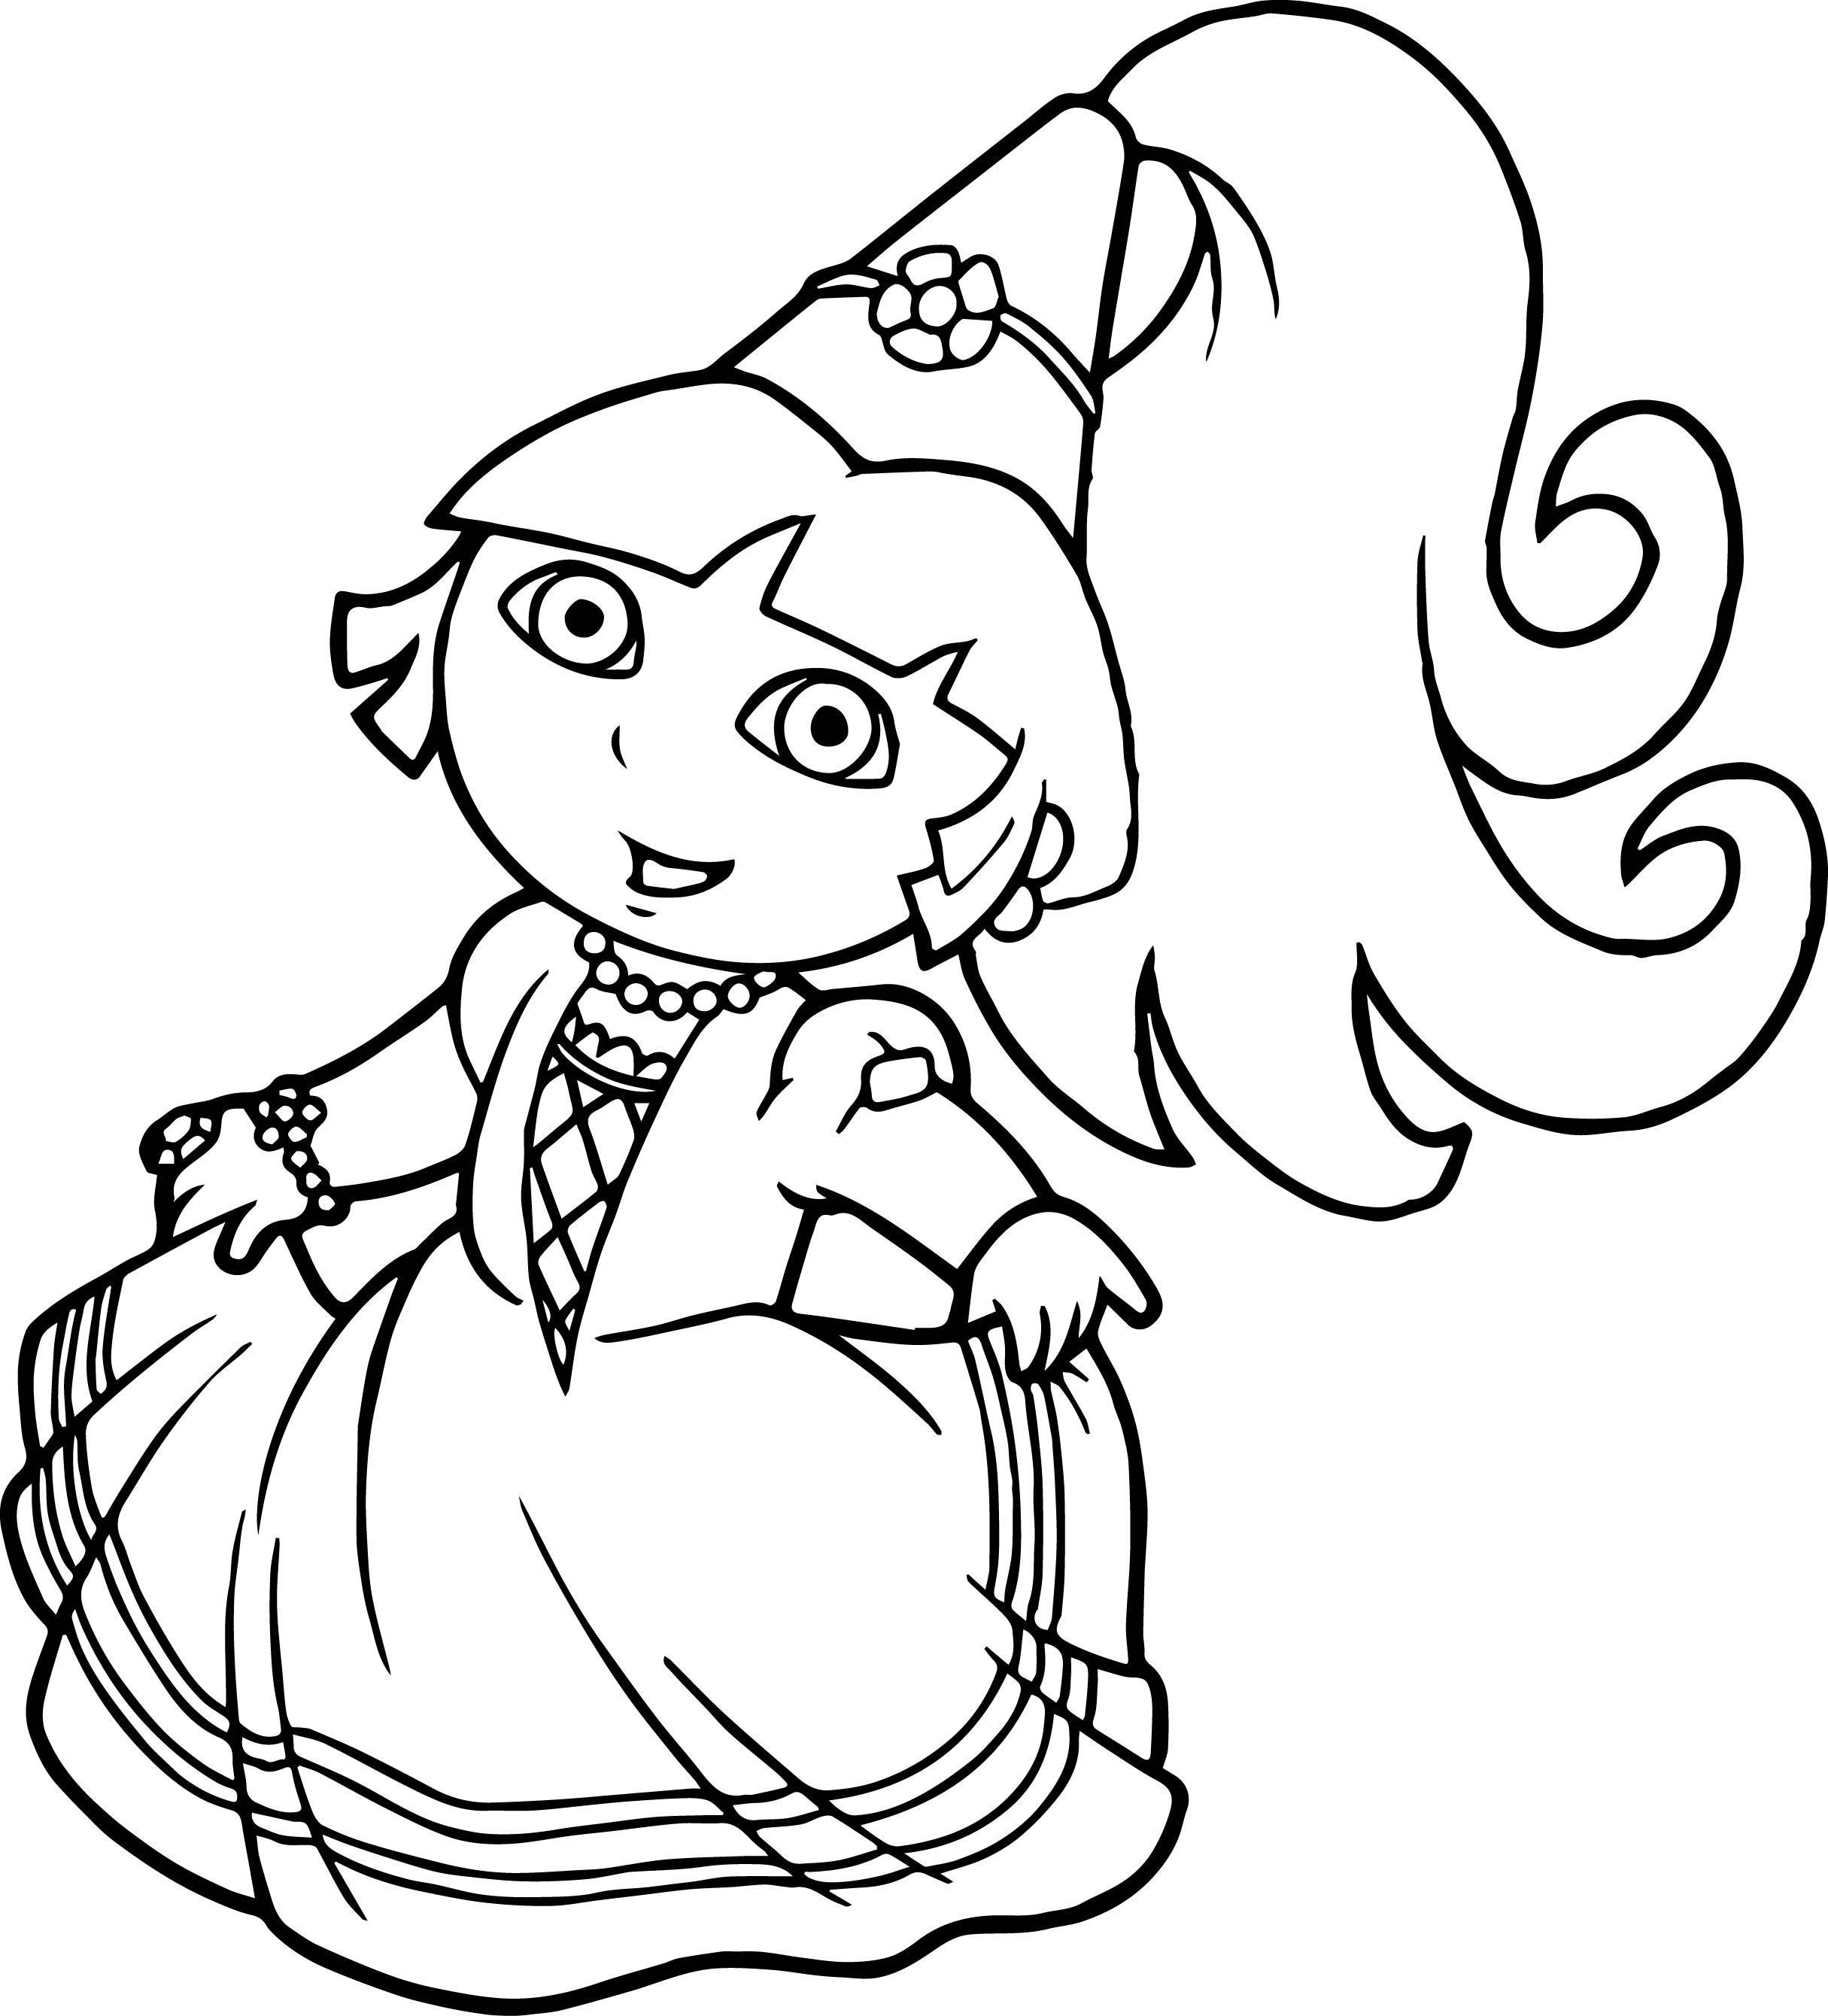 22 Awesome Picture Of Dora Coloring Pages Davemelillo Com Princess Coloring Pages Dora Coloring Halloween Coloring Pages